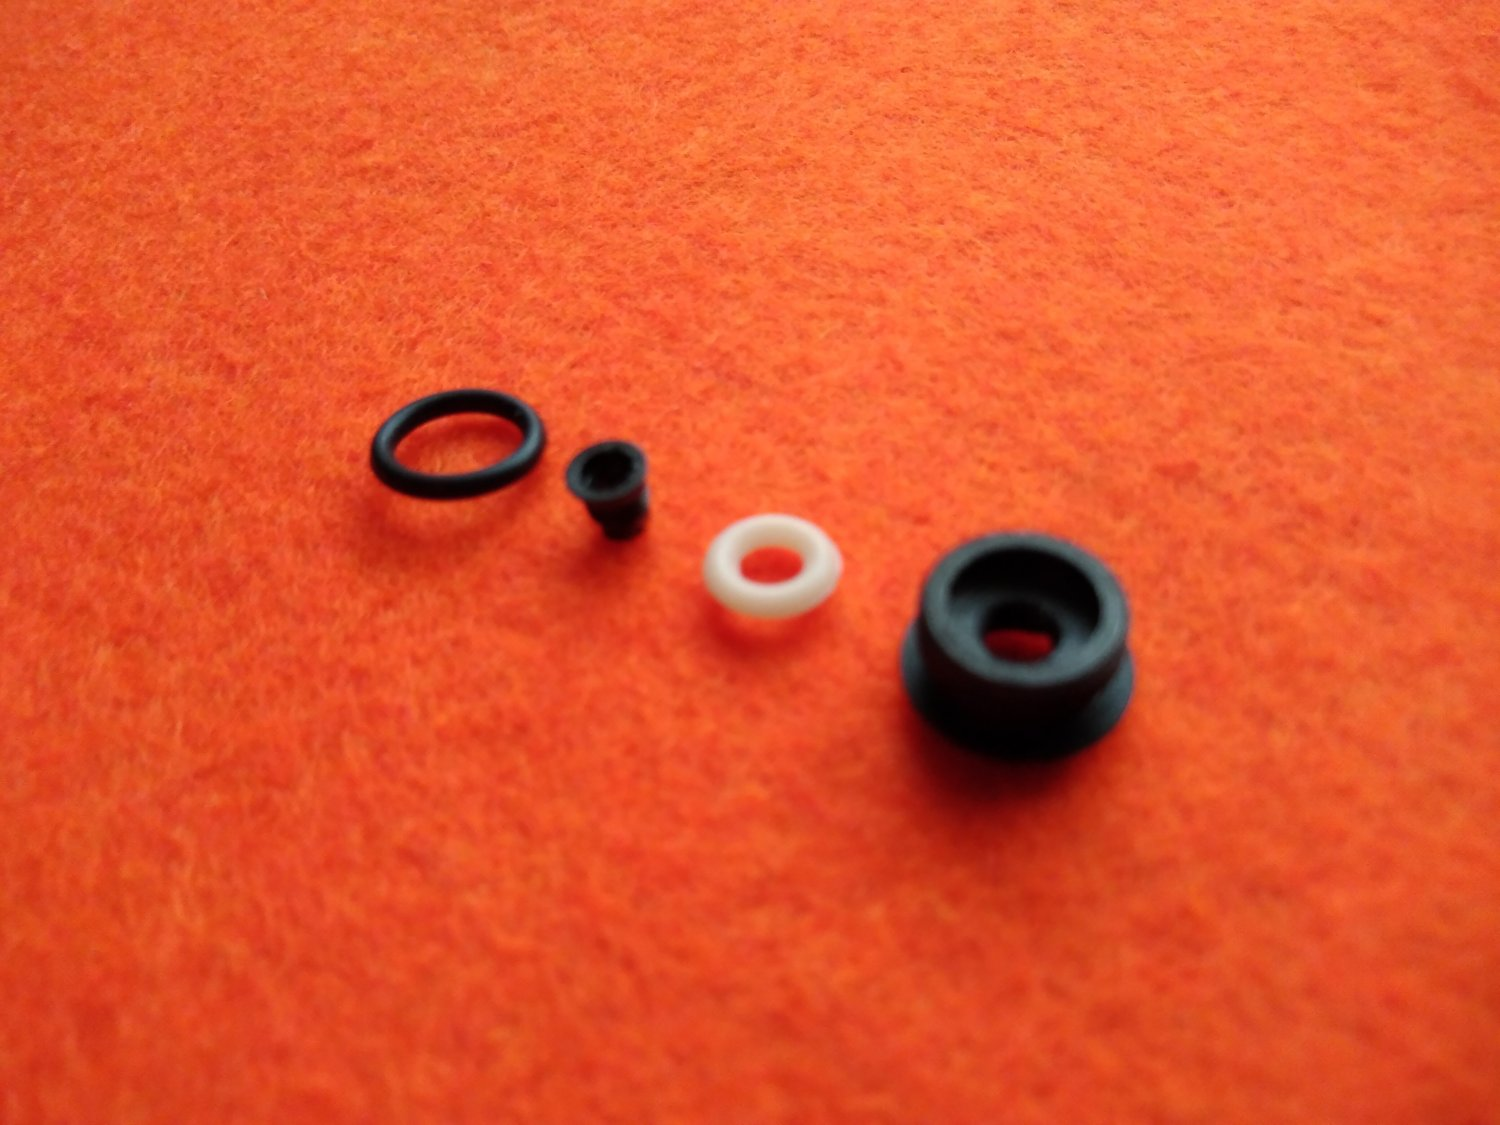 Valve seat MP-661K, MP-654K with disassembly design replacement sealing O-rings, piece made to order